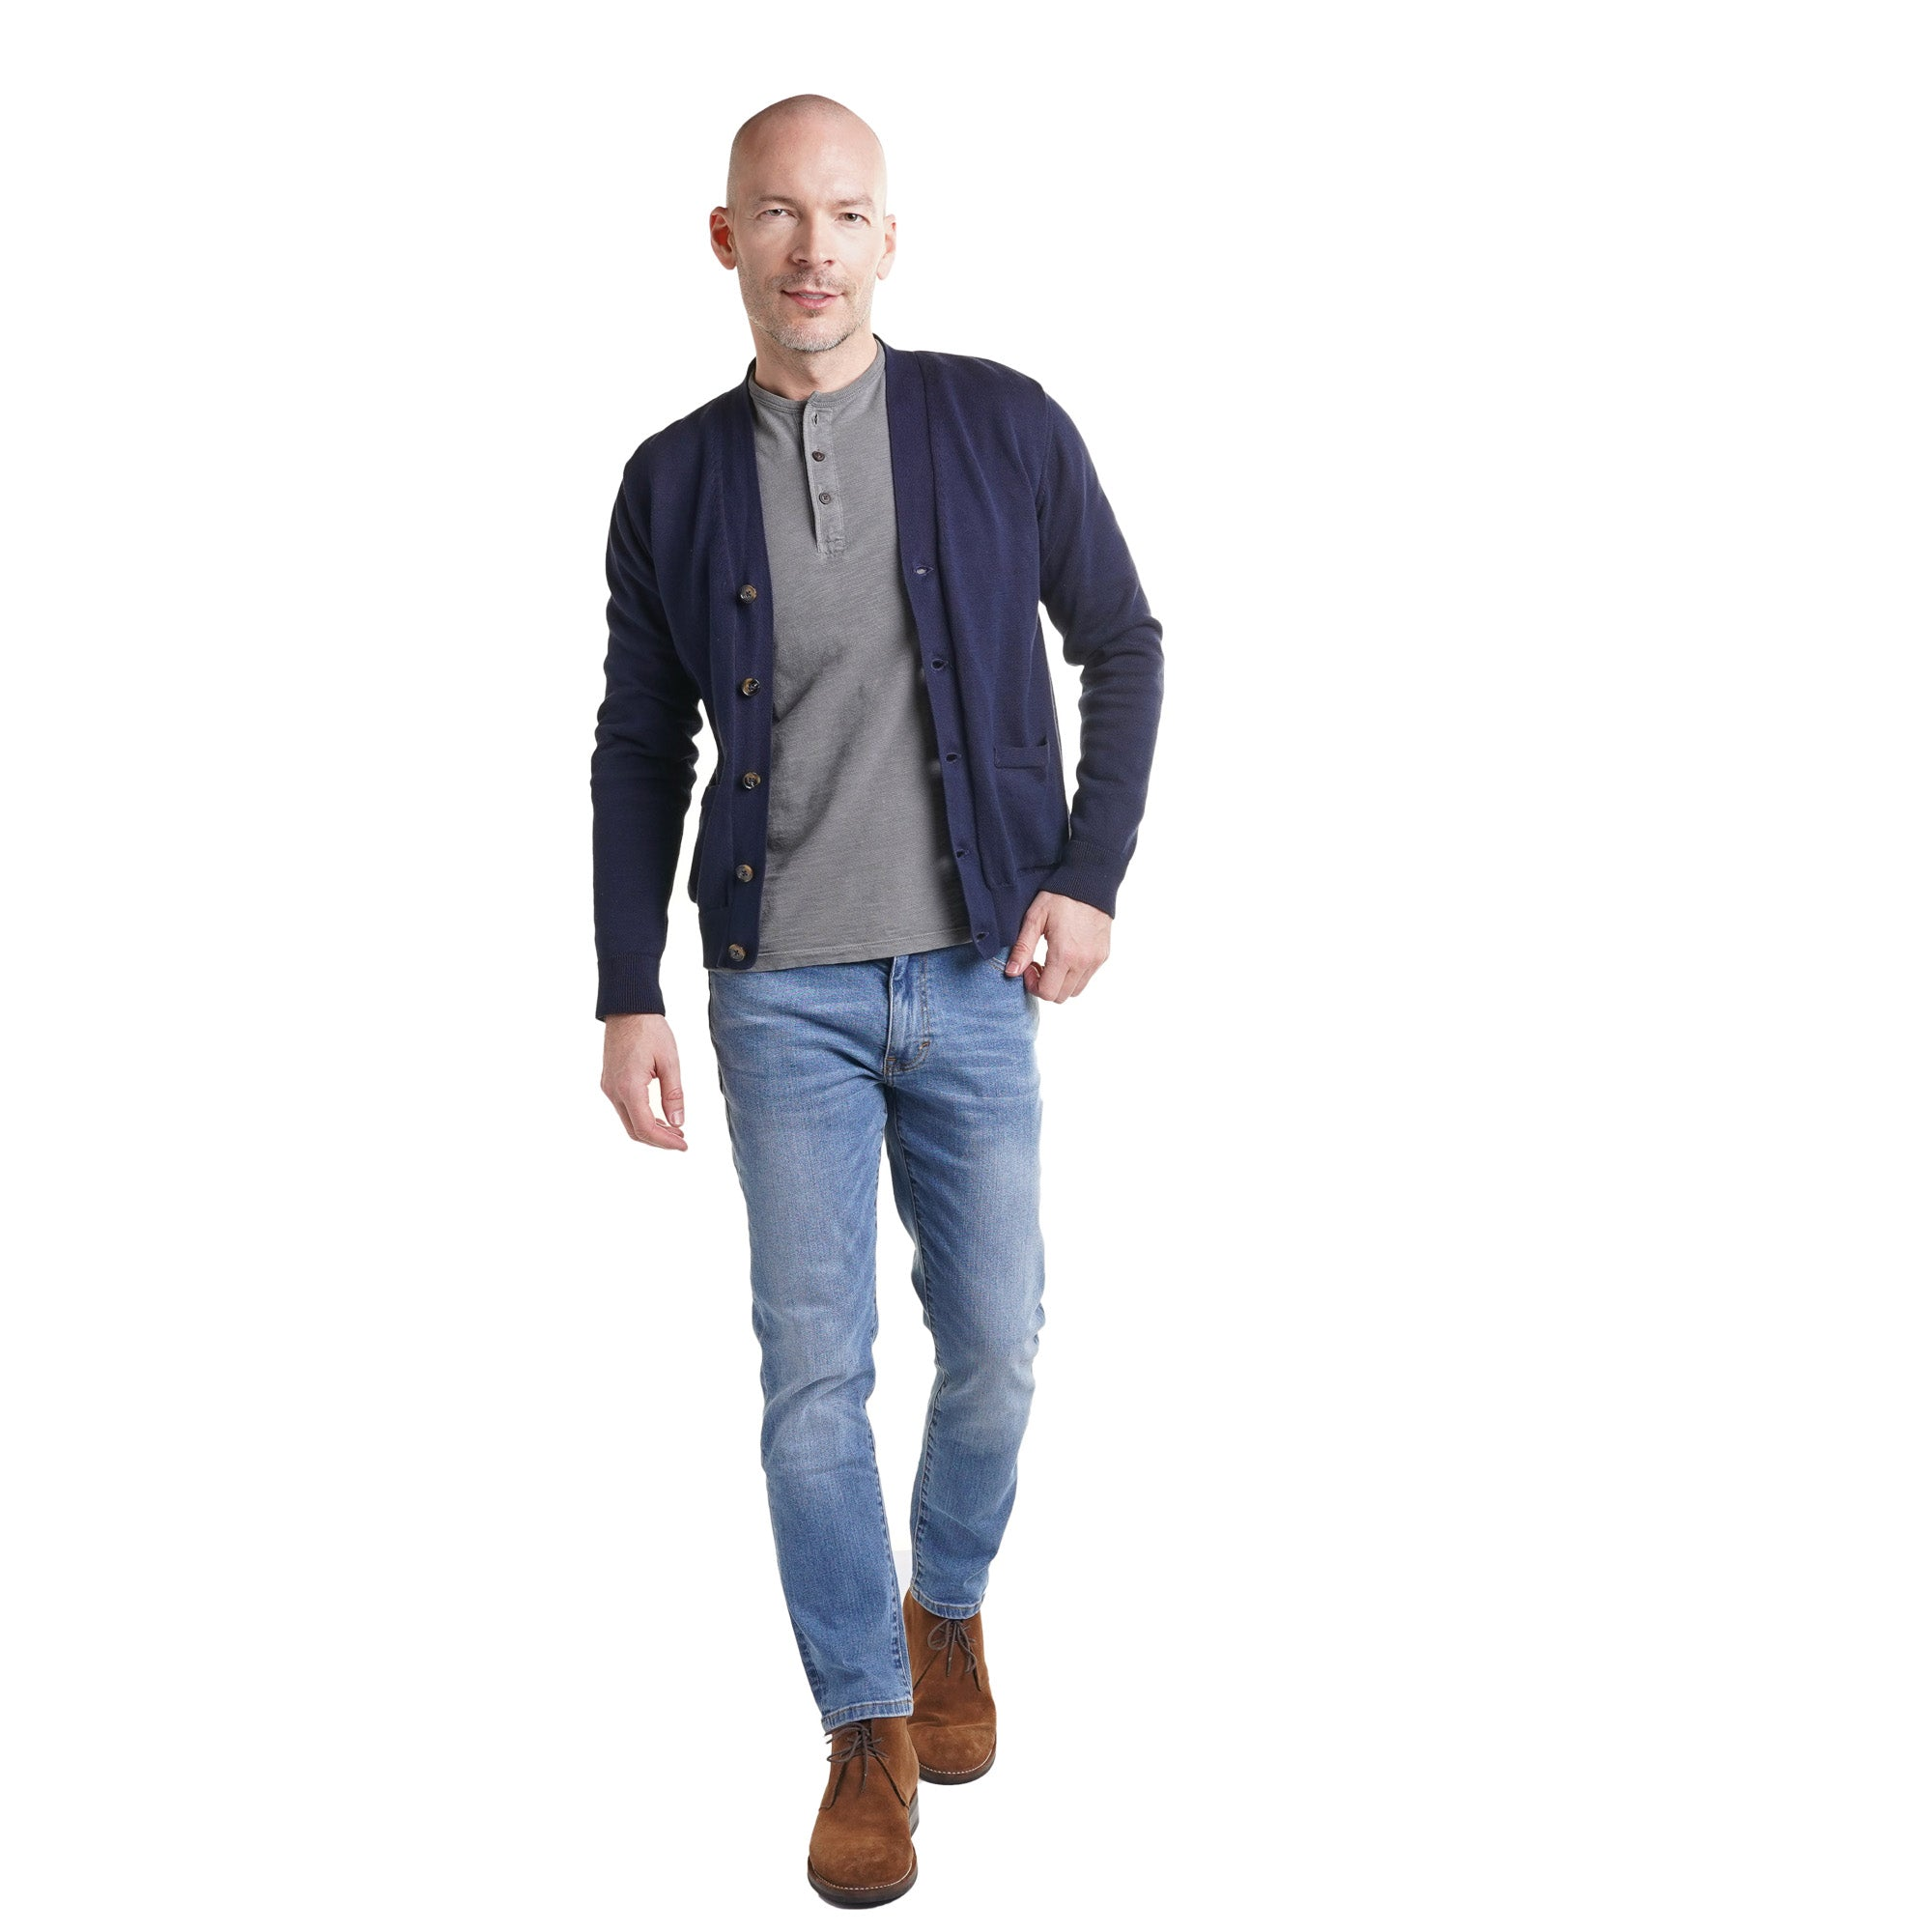 Cardigan with henley shirt